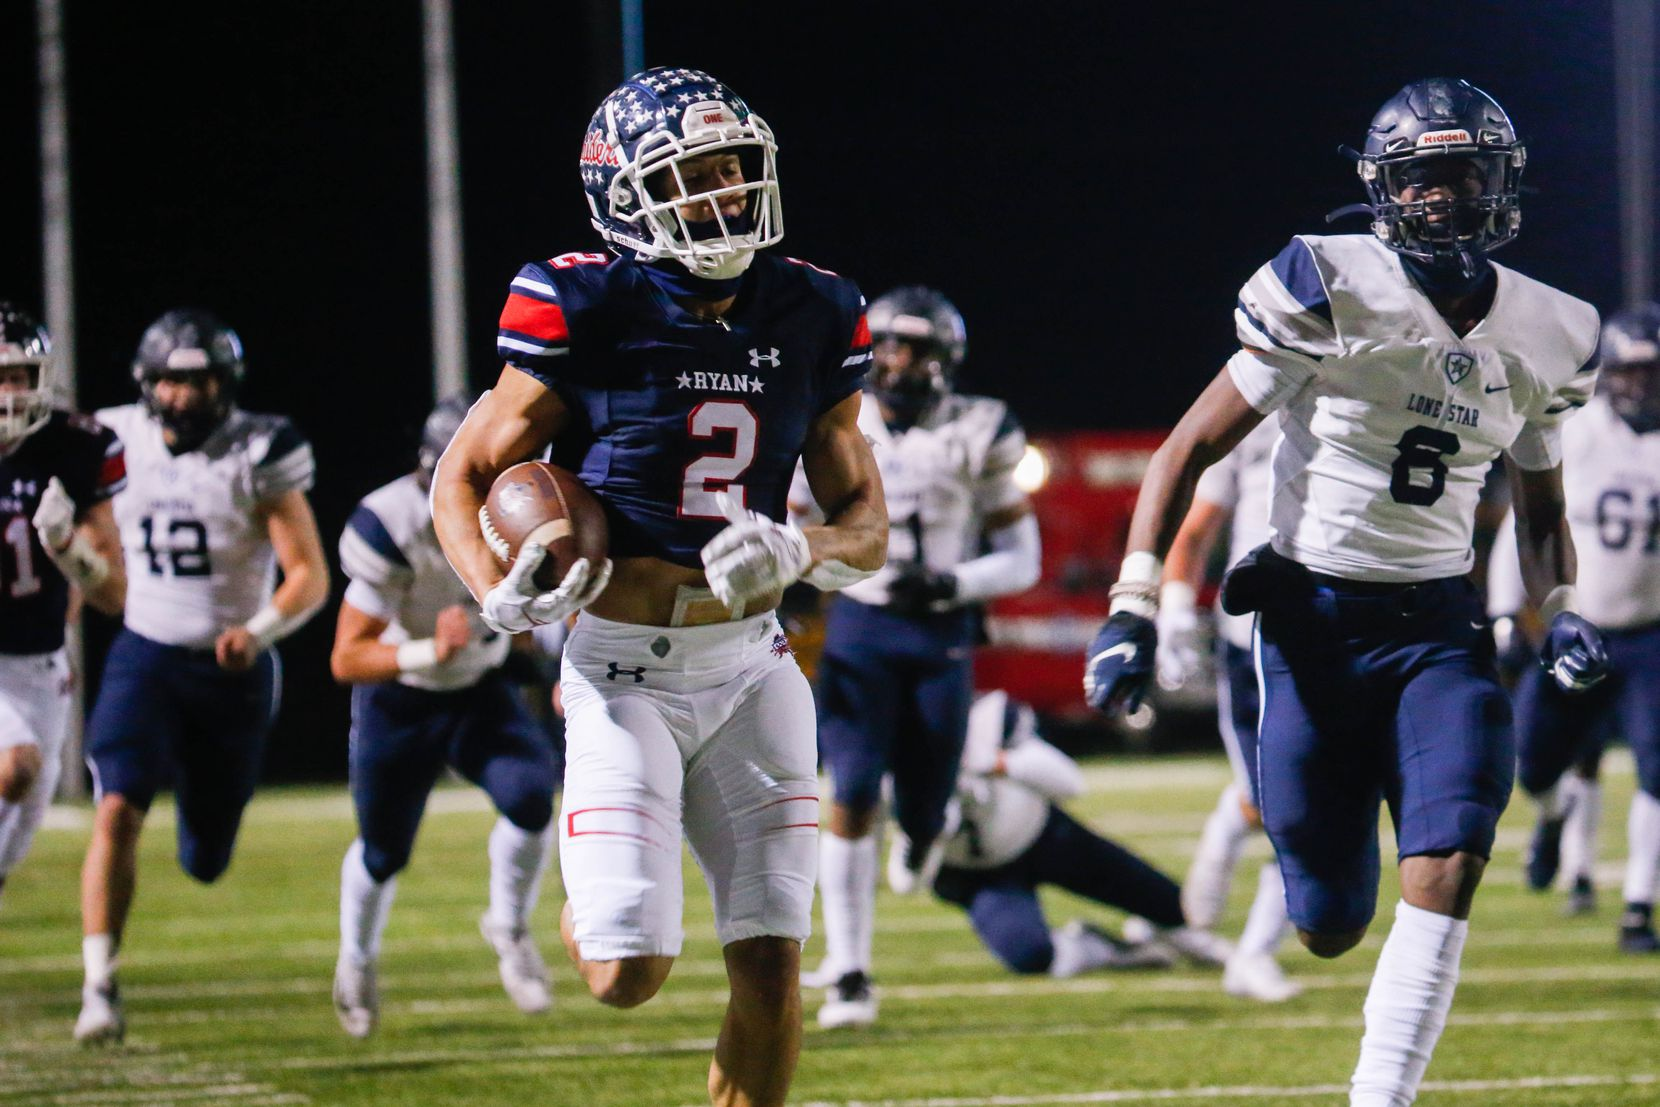 Denton Ryan's Billy Bowman Jr. (2) runs the ball during the second quarter of a football game against Frisco Lone Star at the C.H. Collins Complex in Denton on Thursday, Dec. 4, 2020. The game is tied at halftime, 14-14. (Juan Figueroa/ The Dallas Morning News)